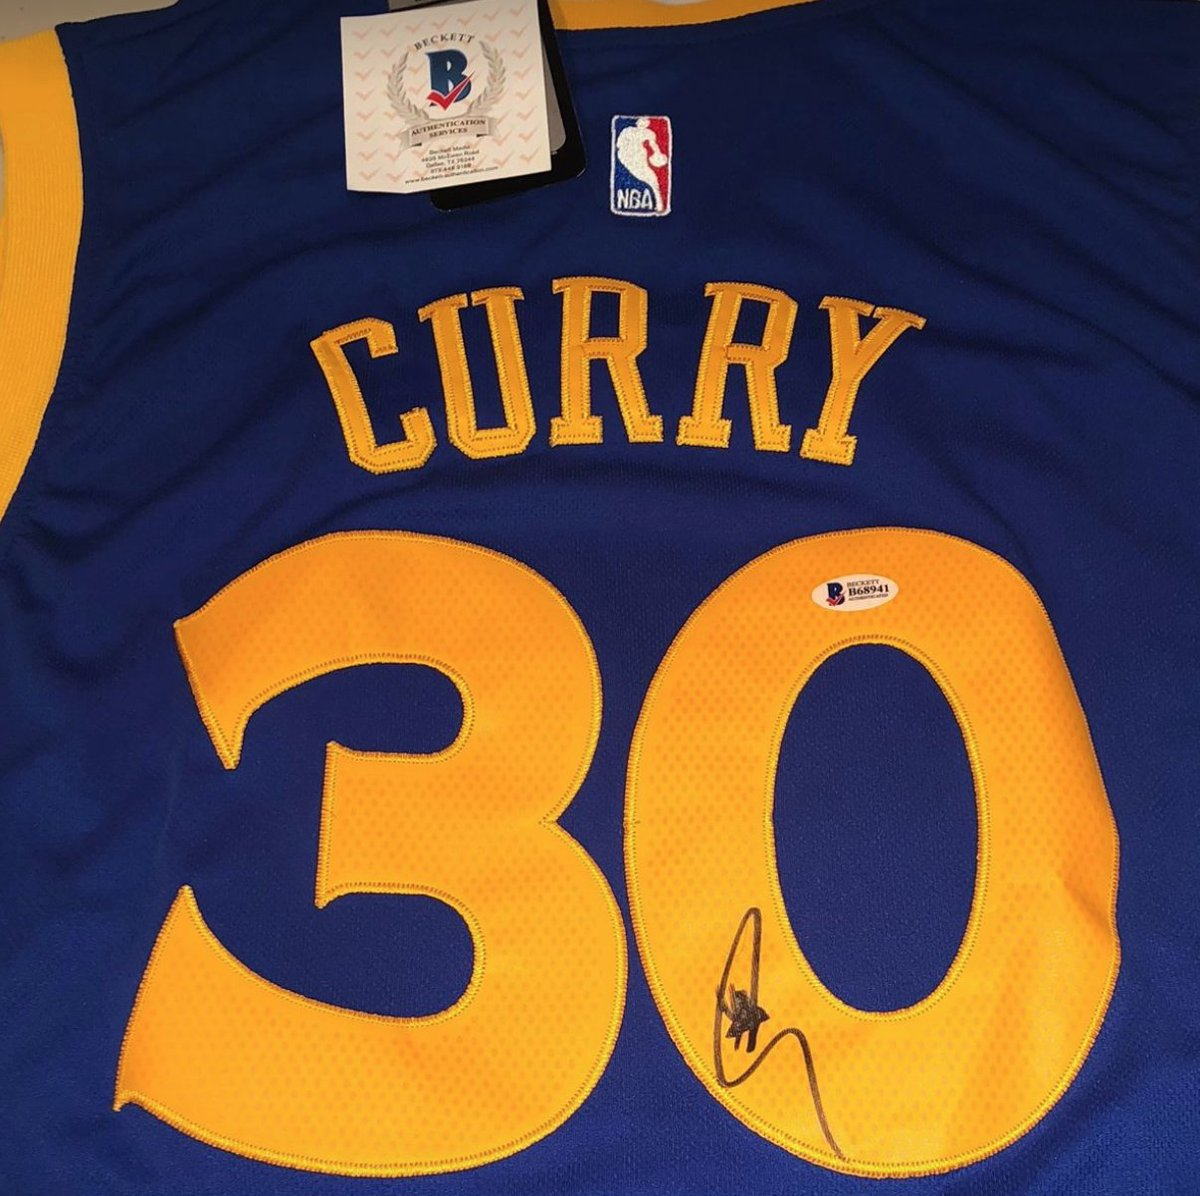 ... NBA contest to win a signed Steph Curry jersey! Enter here  https    drafters.com tournament nba toUROKeyYj1 …  DFS  giveaway pic.twitter.com aoe2eWczm5 c598fd9eb